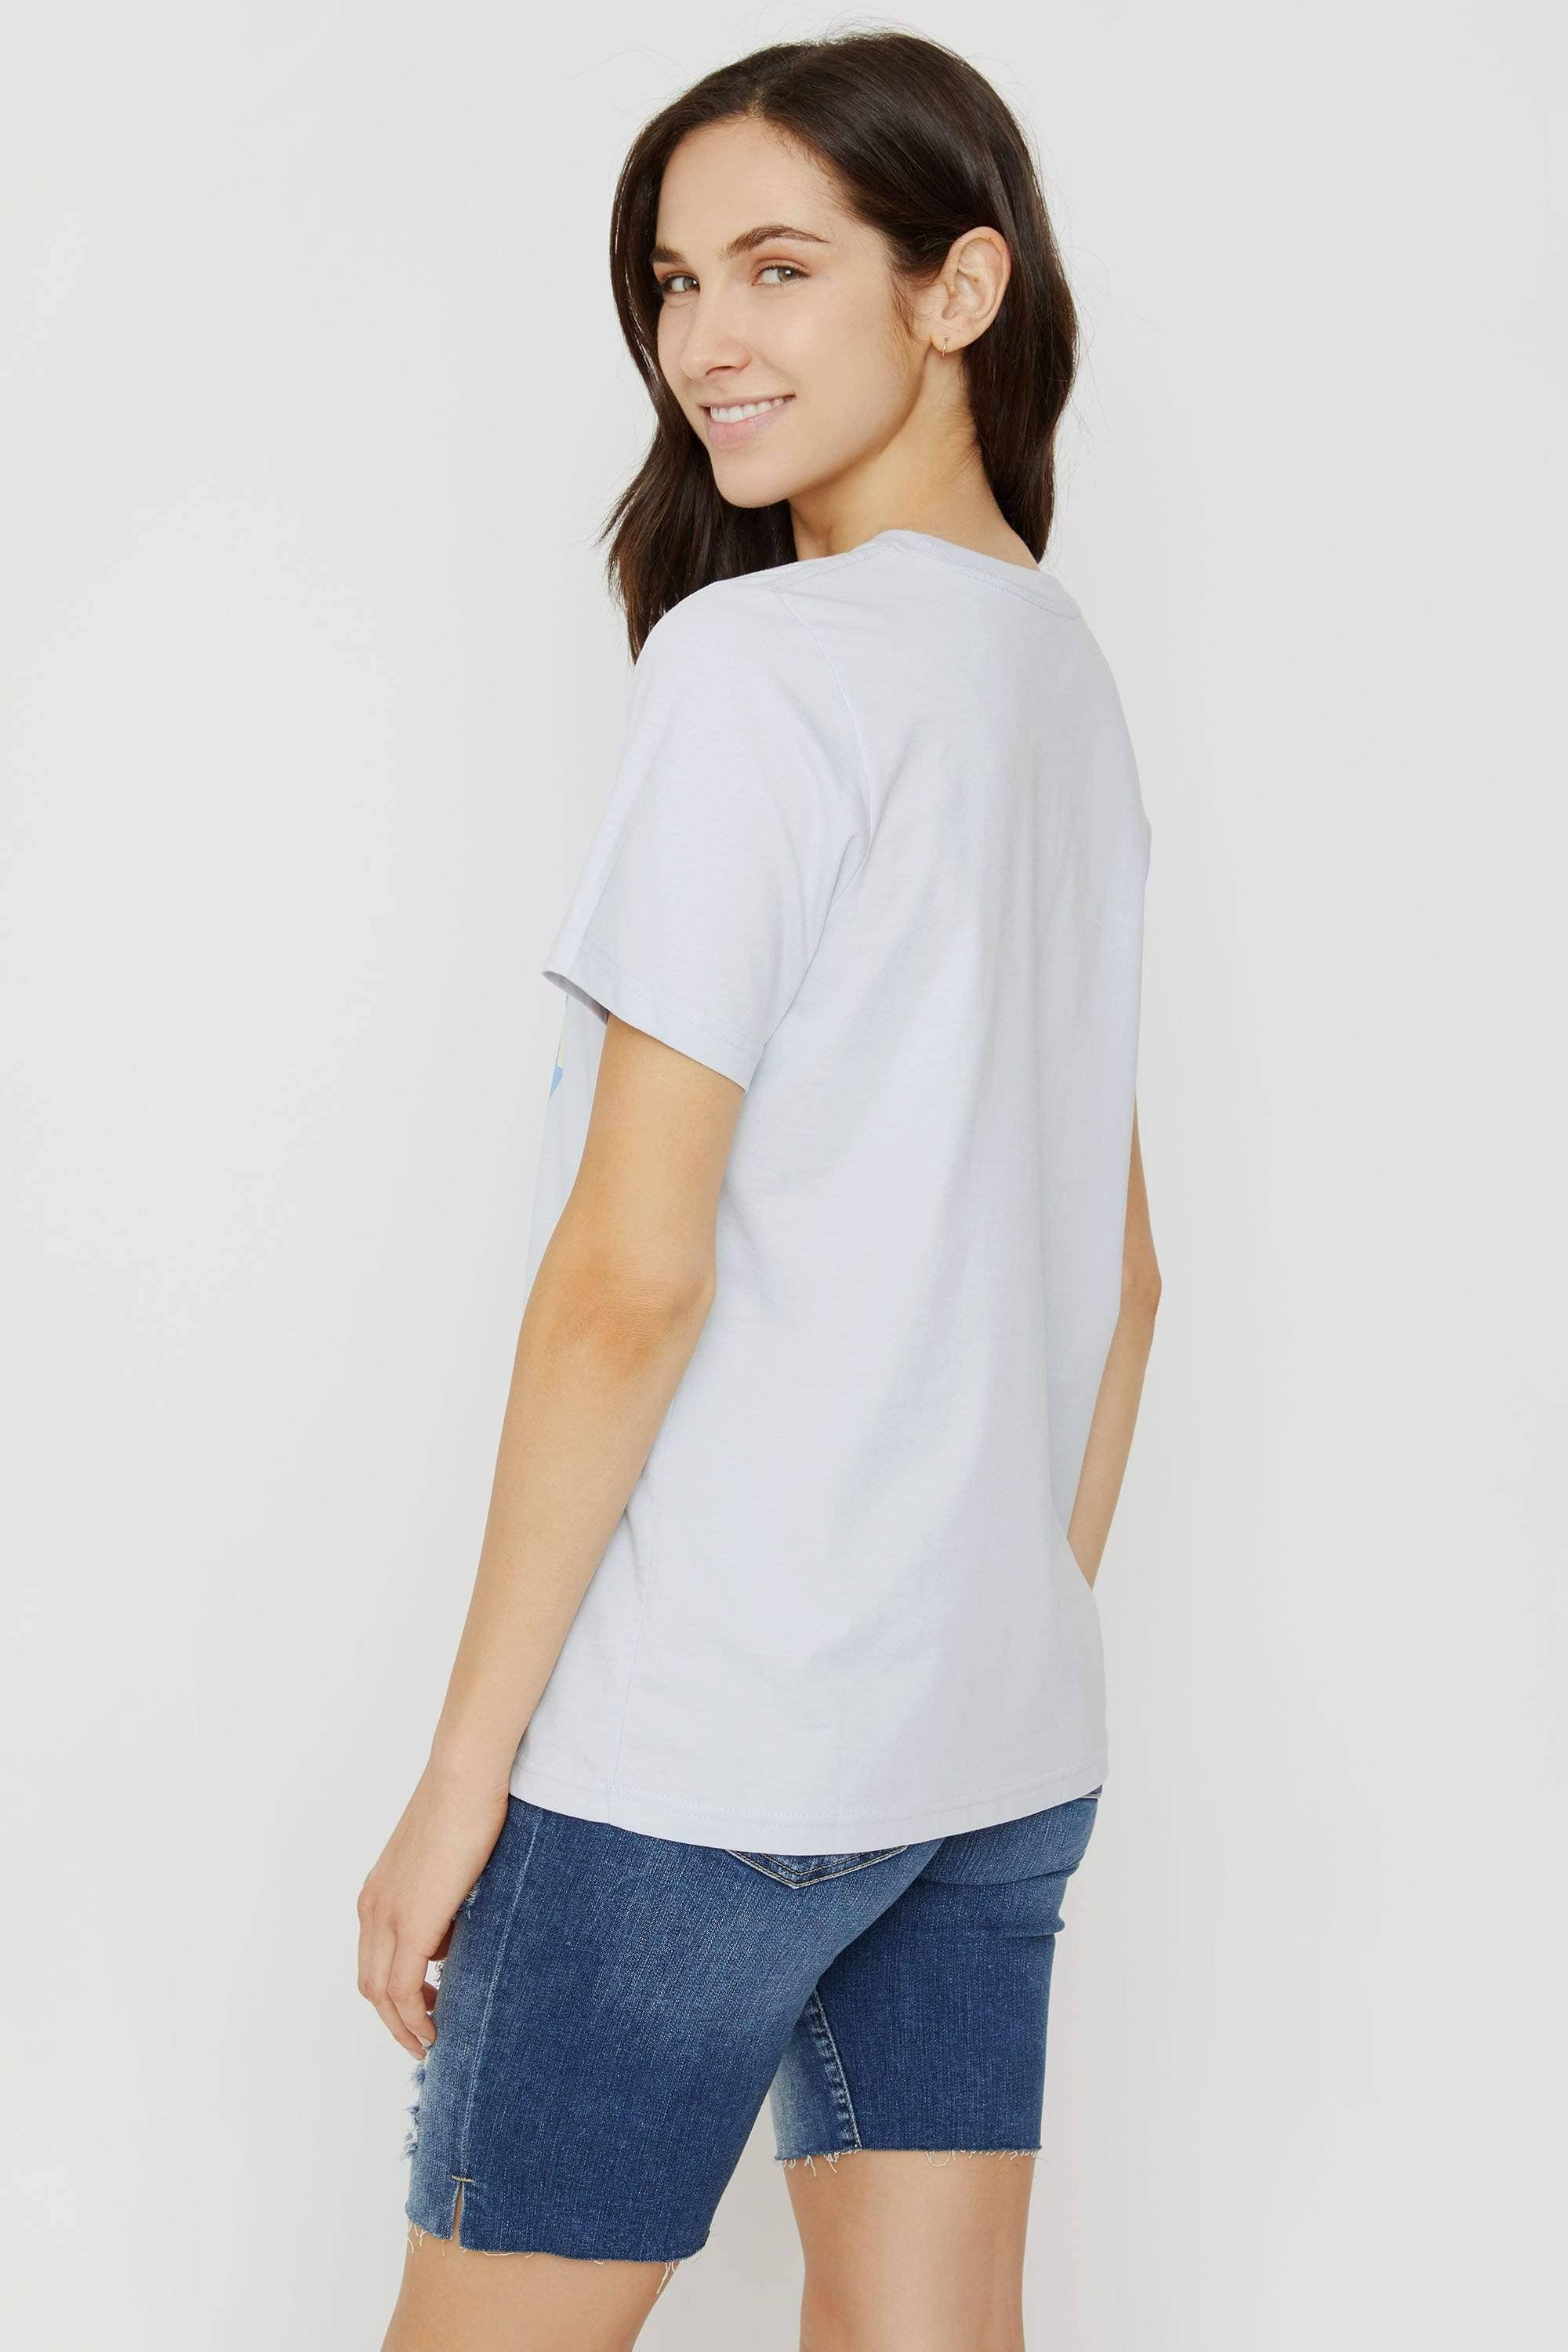 Ella Fit Moonstone Blue Here Comes The Sun Tee - Ivory Ella - Women's Short Sleeve Tees